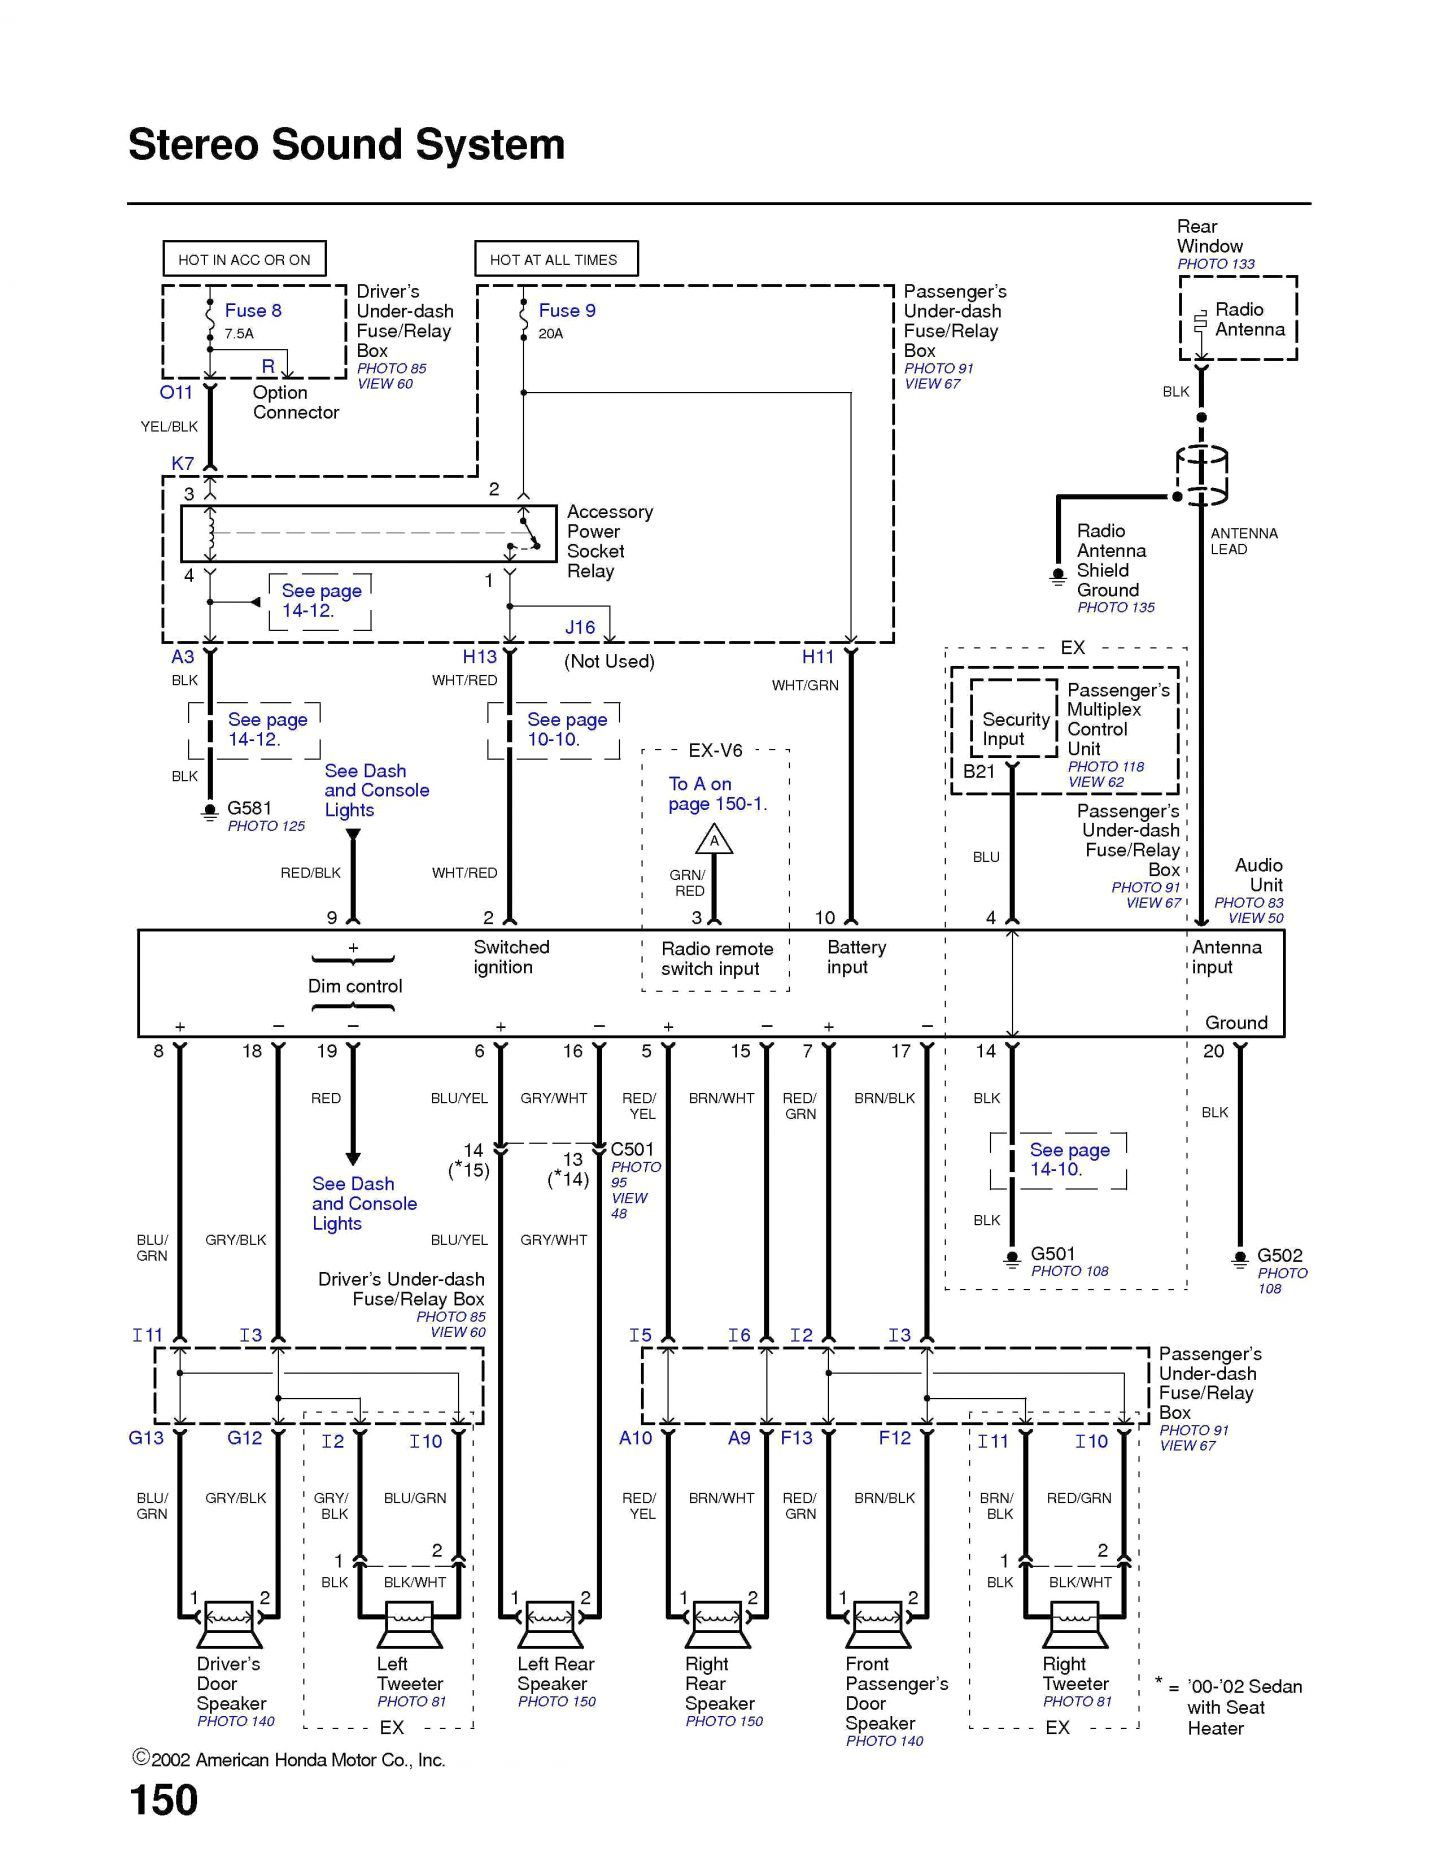 [DIAGRAM_34OR]  1998 Honda Accord Wiring Diagram – volovets.info | Diagram, Honda accord,  Honda | 98 Accord Wiring Diagram |  | Pinterest